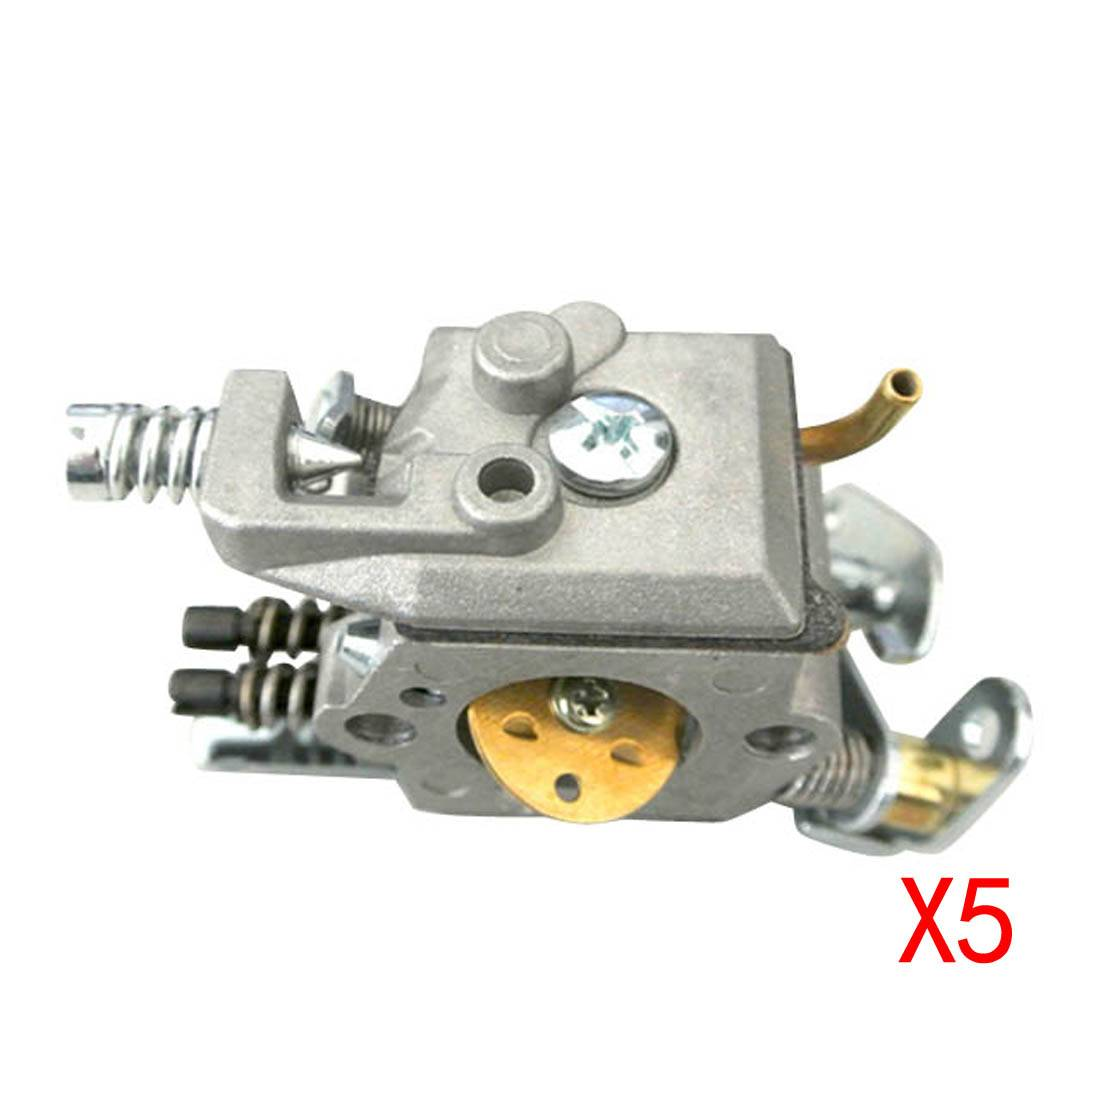 New Carburetor Carby For Husqvarna 136 137 141 142 Chainsaw Engine Motor Part 38mm engine housing cylinder piston crankcase kit fit husqvarna 137 142 chaisnaw